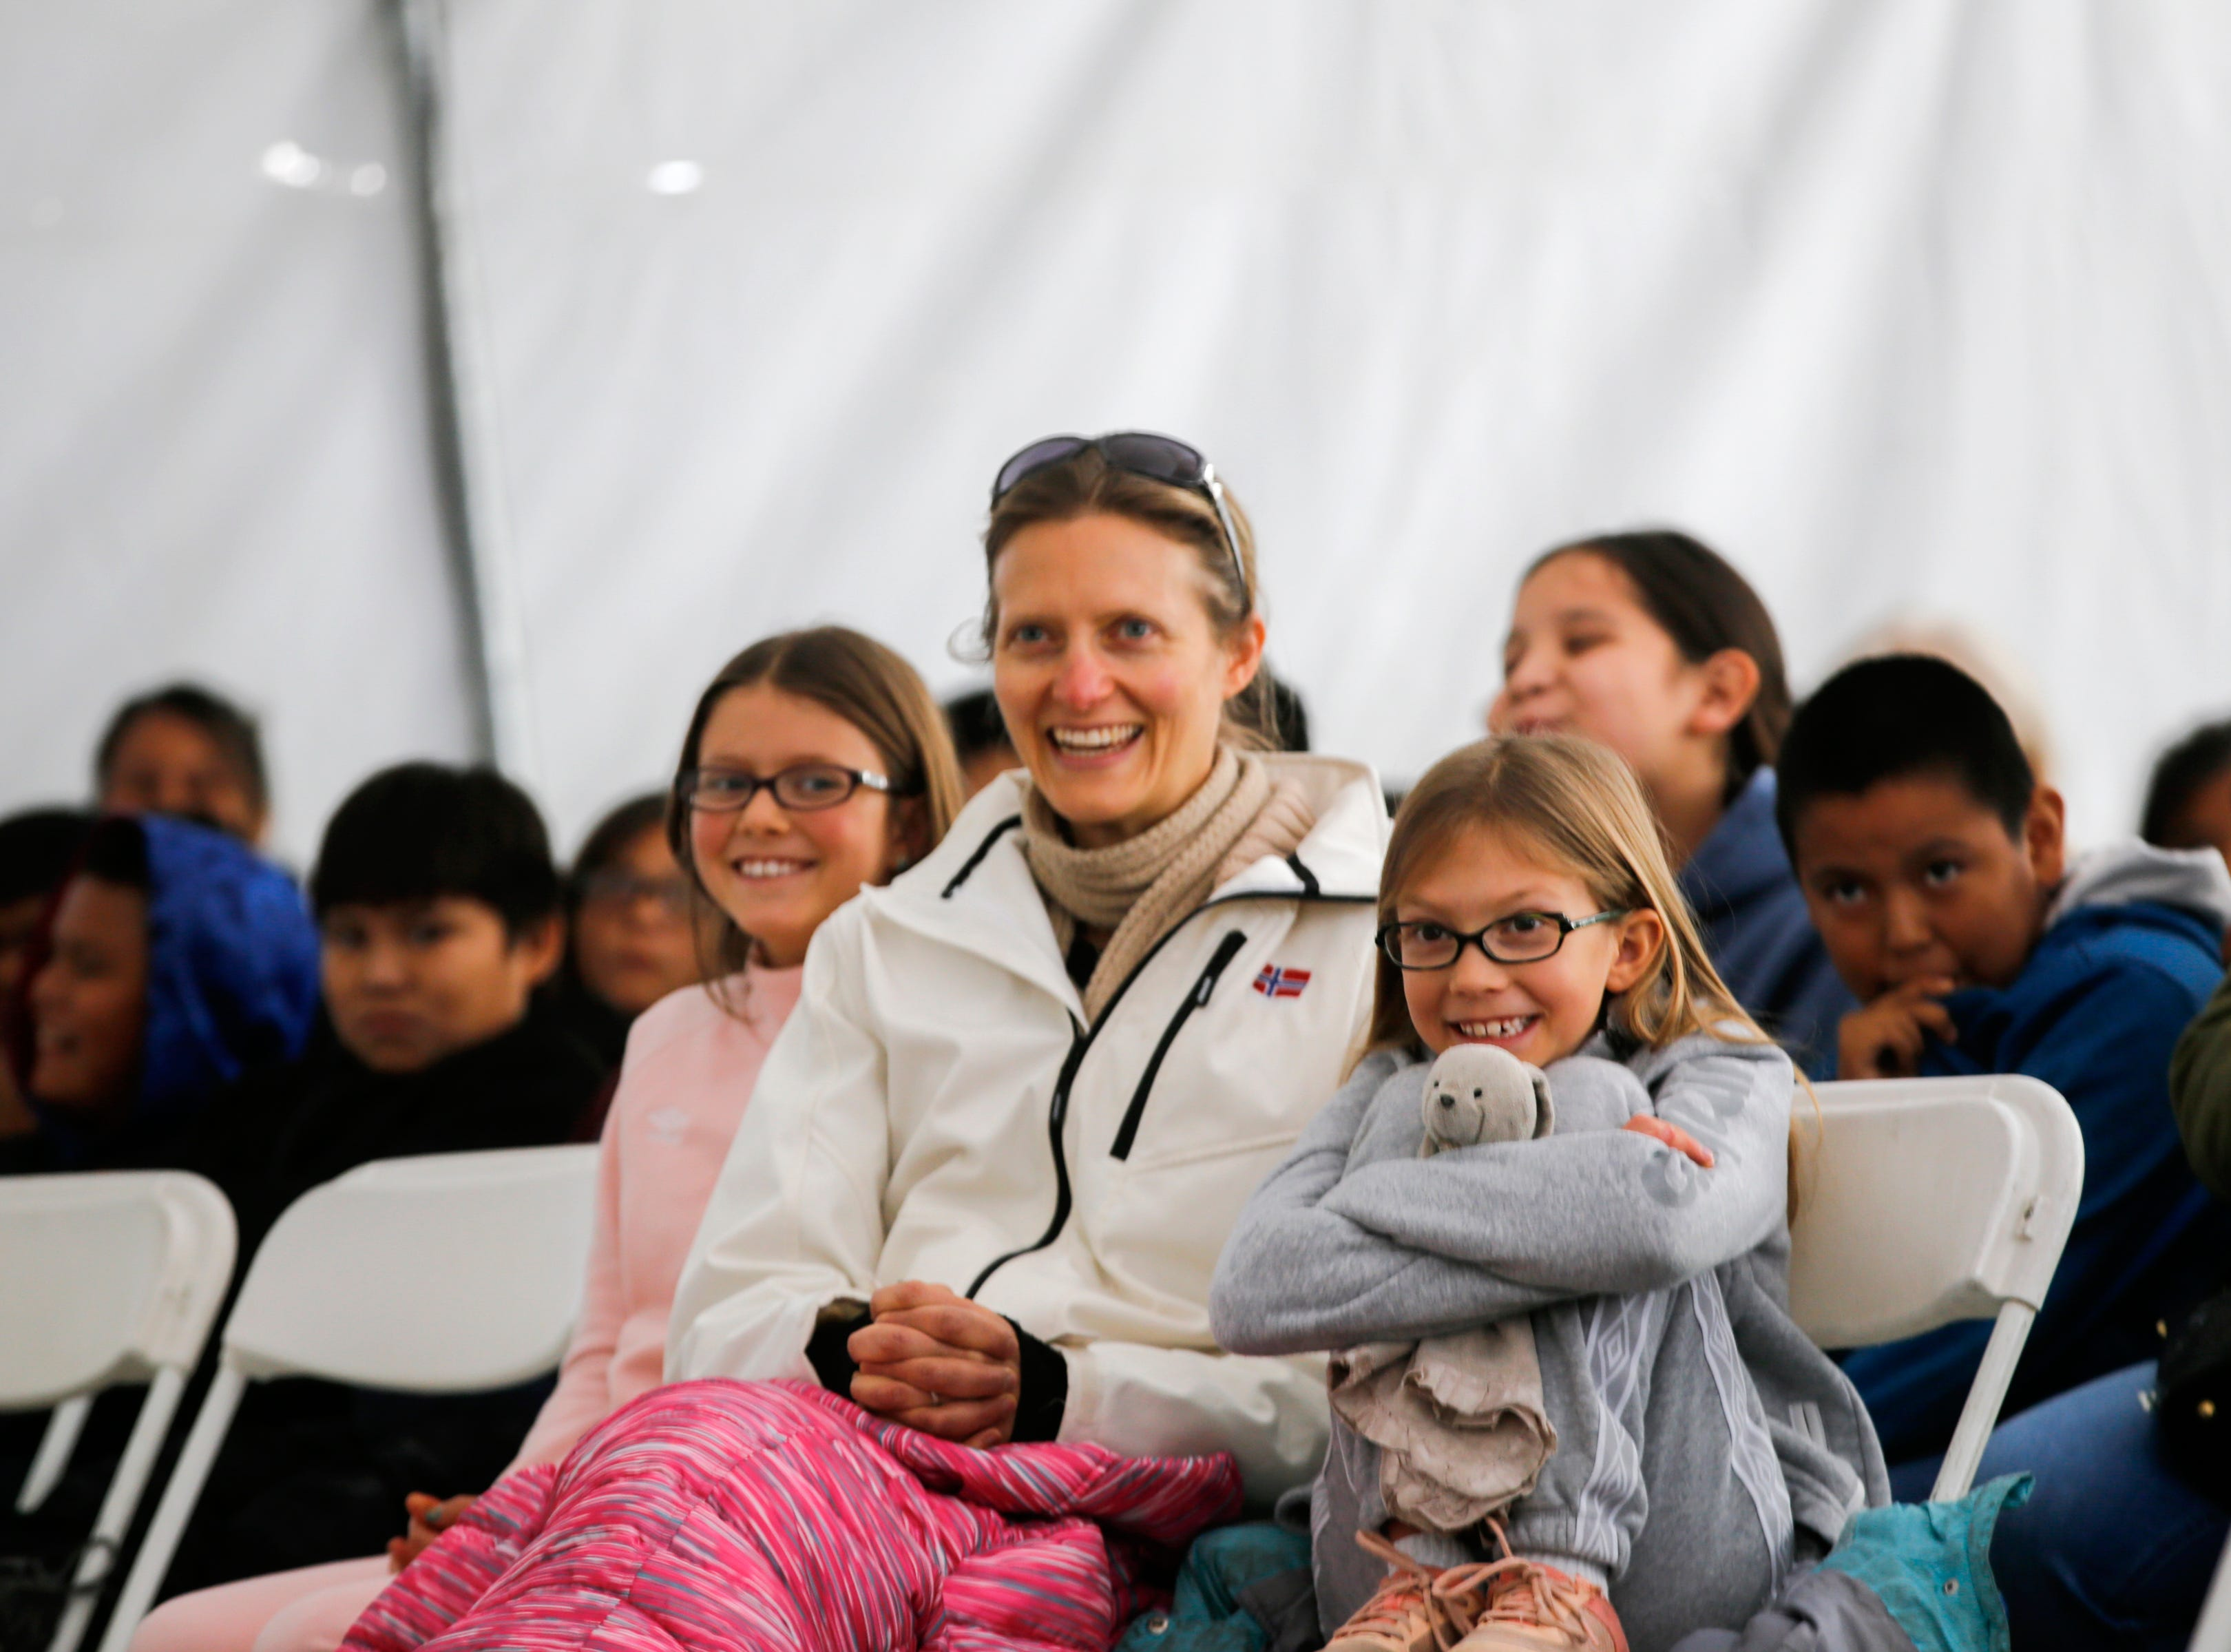 At center, Carolyn McGuire enjoys the Four Corners Storytelling Festival with her daughters, Elizabeth Seitz, left, and Abigail Seitz, right, enjoy a story with their mother Friday, Oct. 12, 2018 at Berg Park in Farmington.